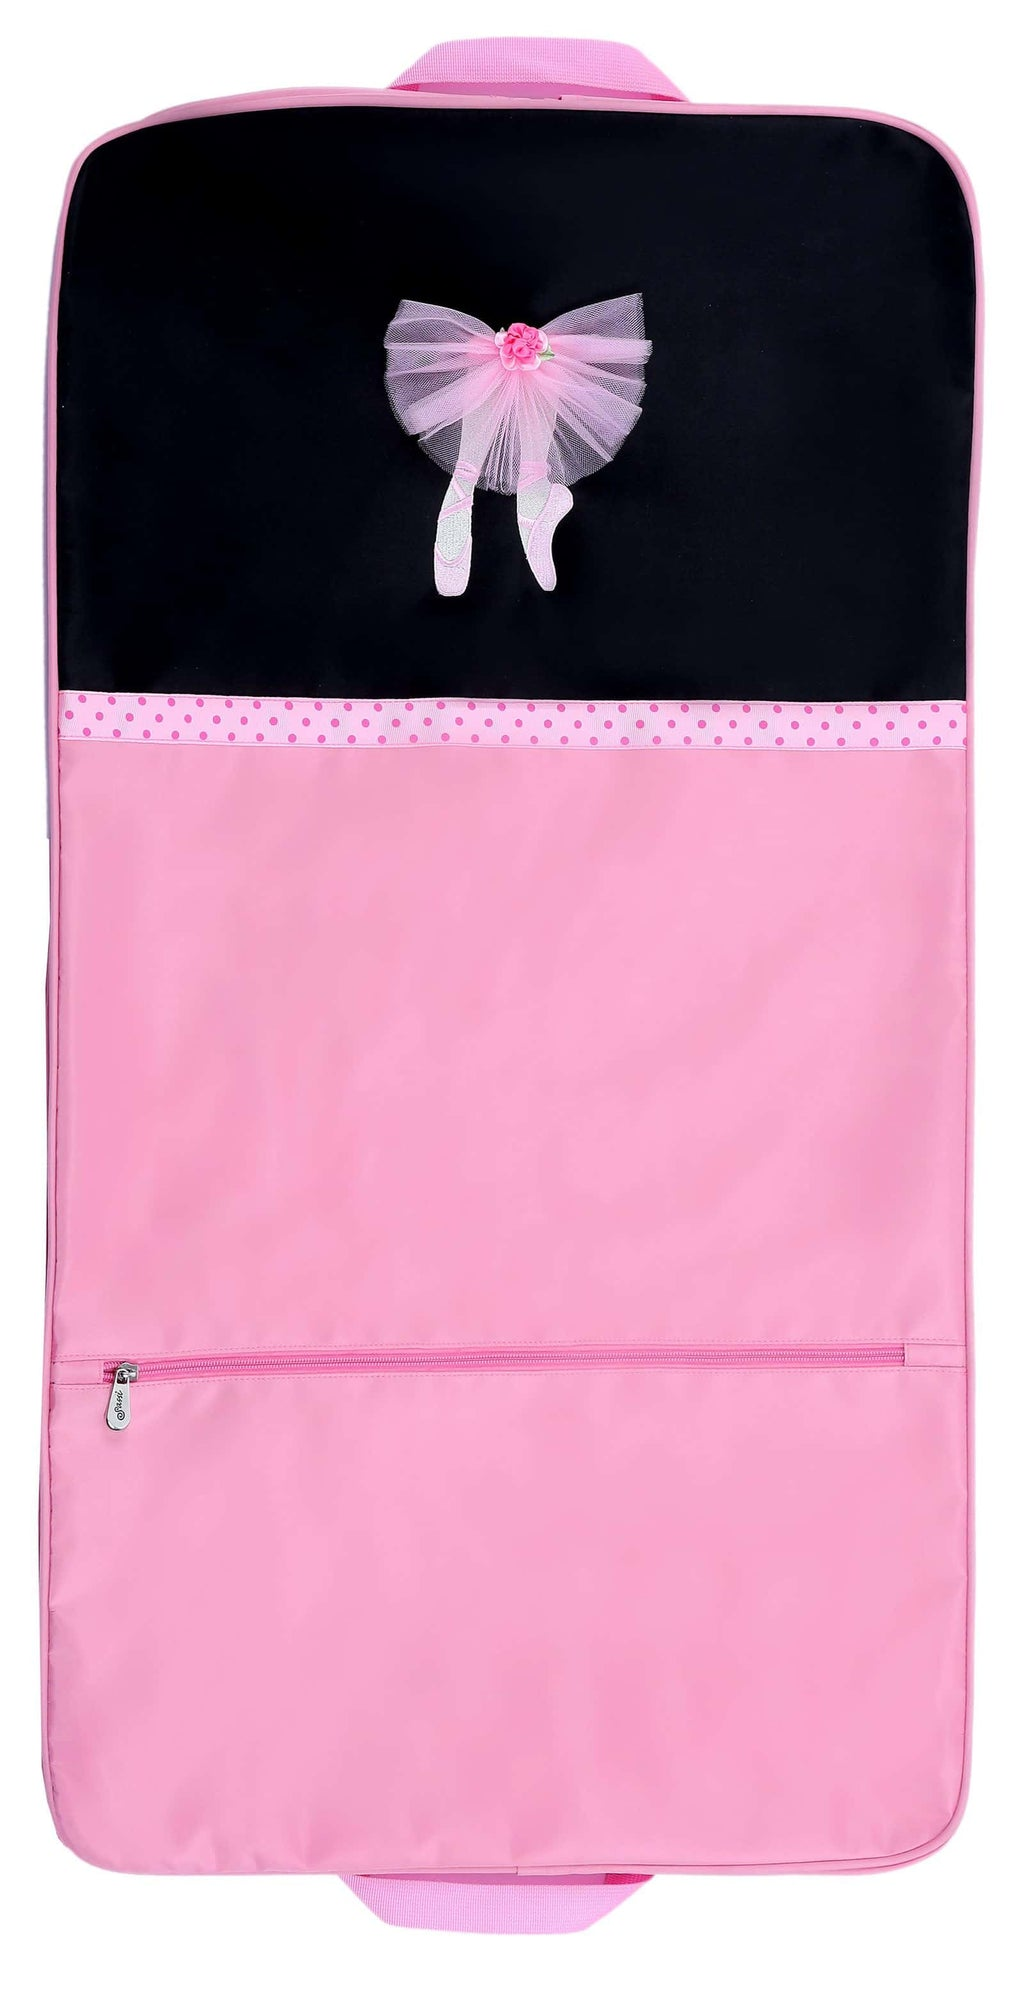 OYT-04 On Your Toes Garment Bag